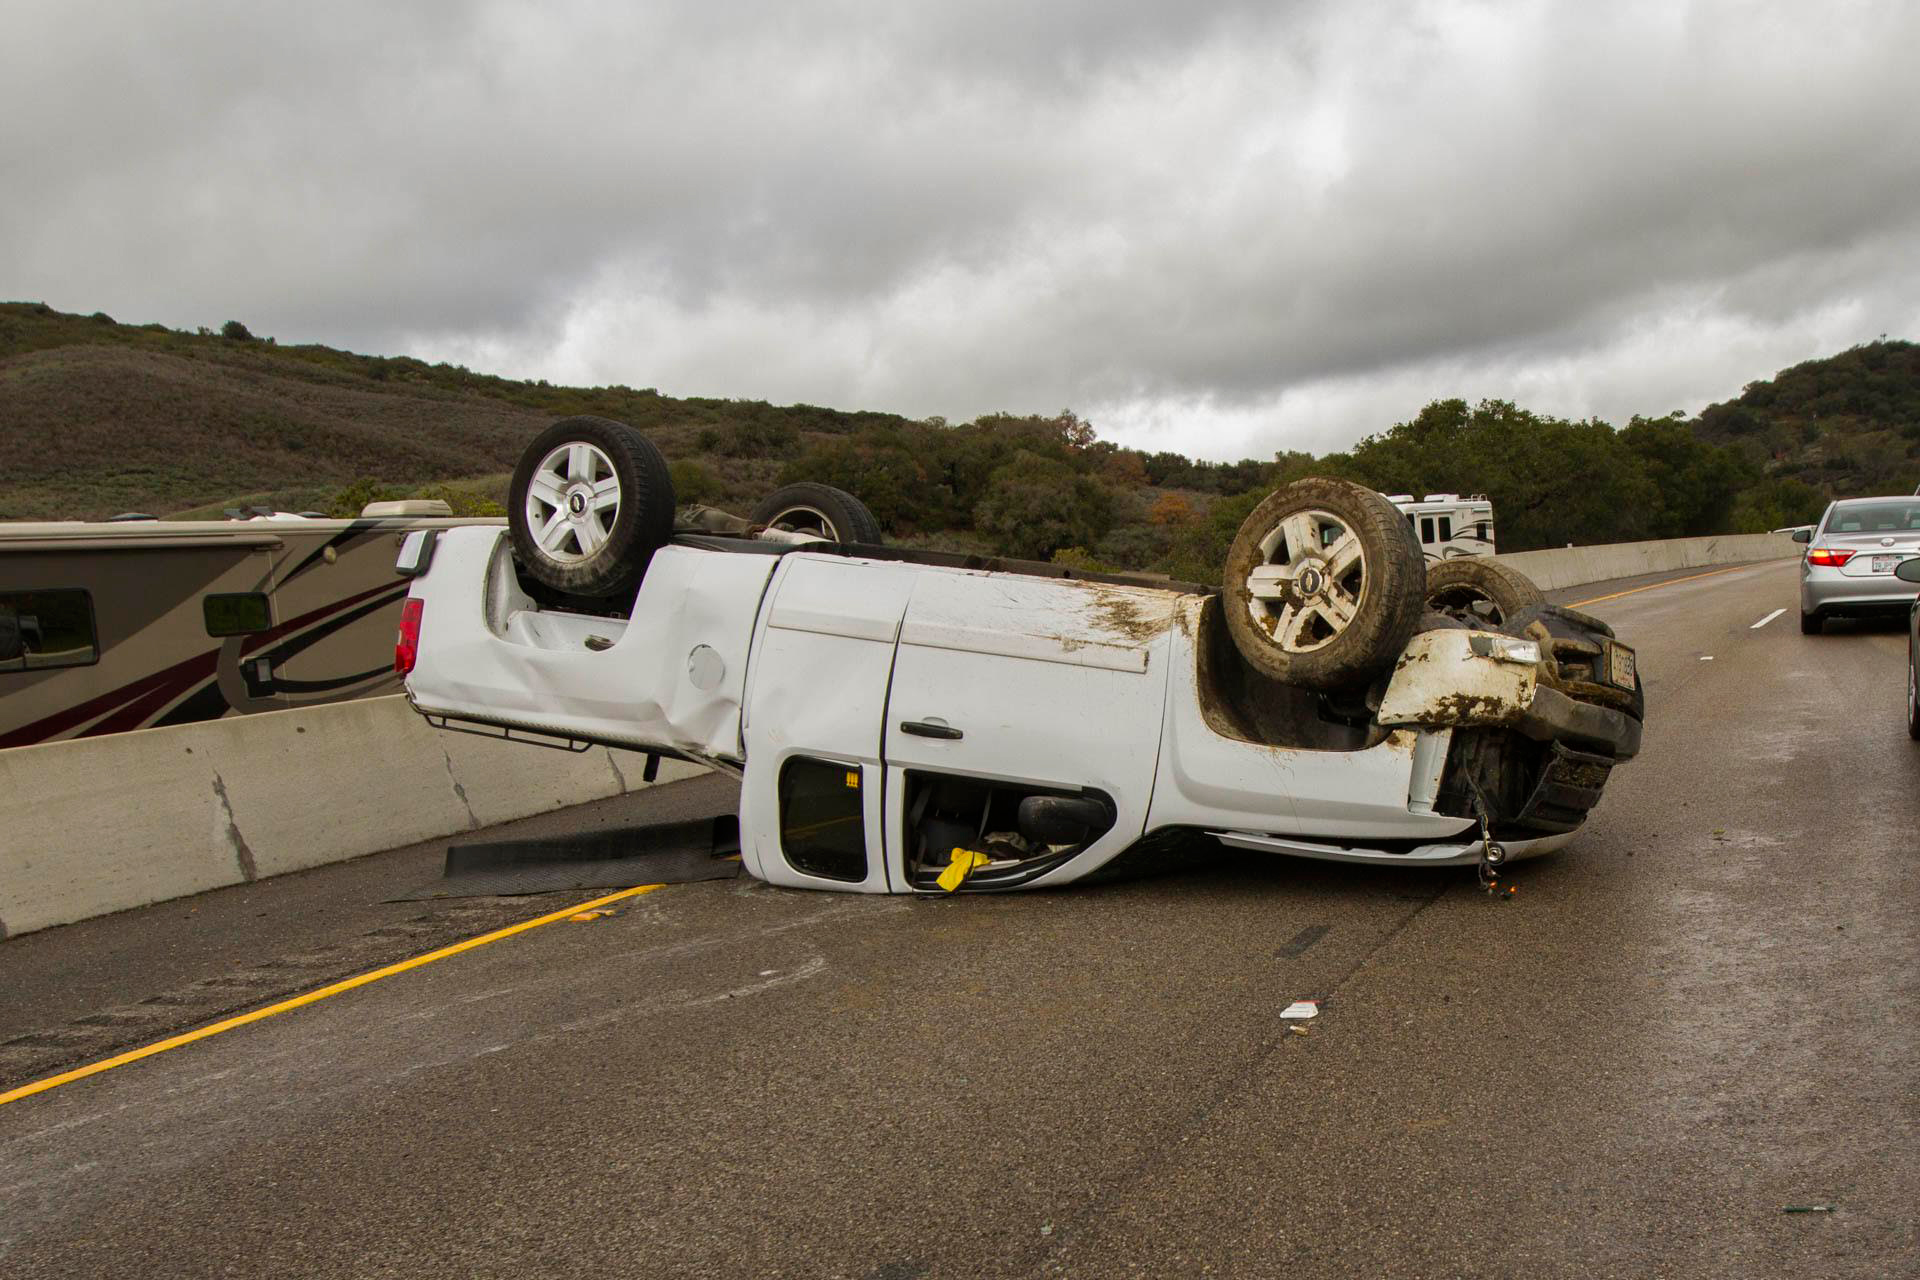 There were no injuries in a rollover accident on Highway 101 in Gaviota Sunday.